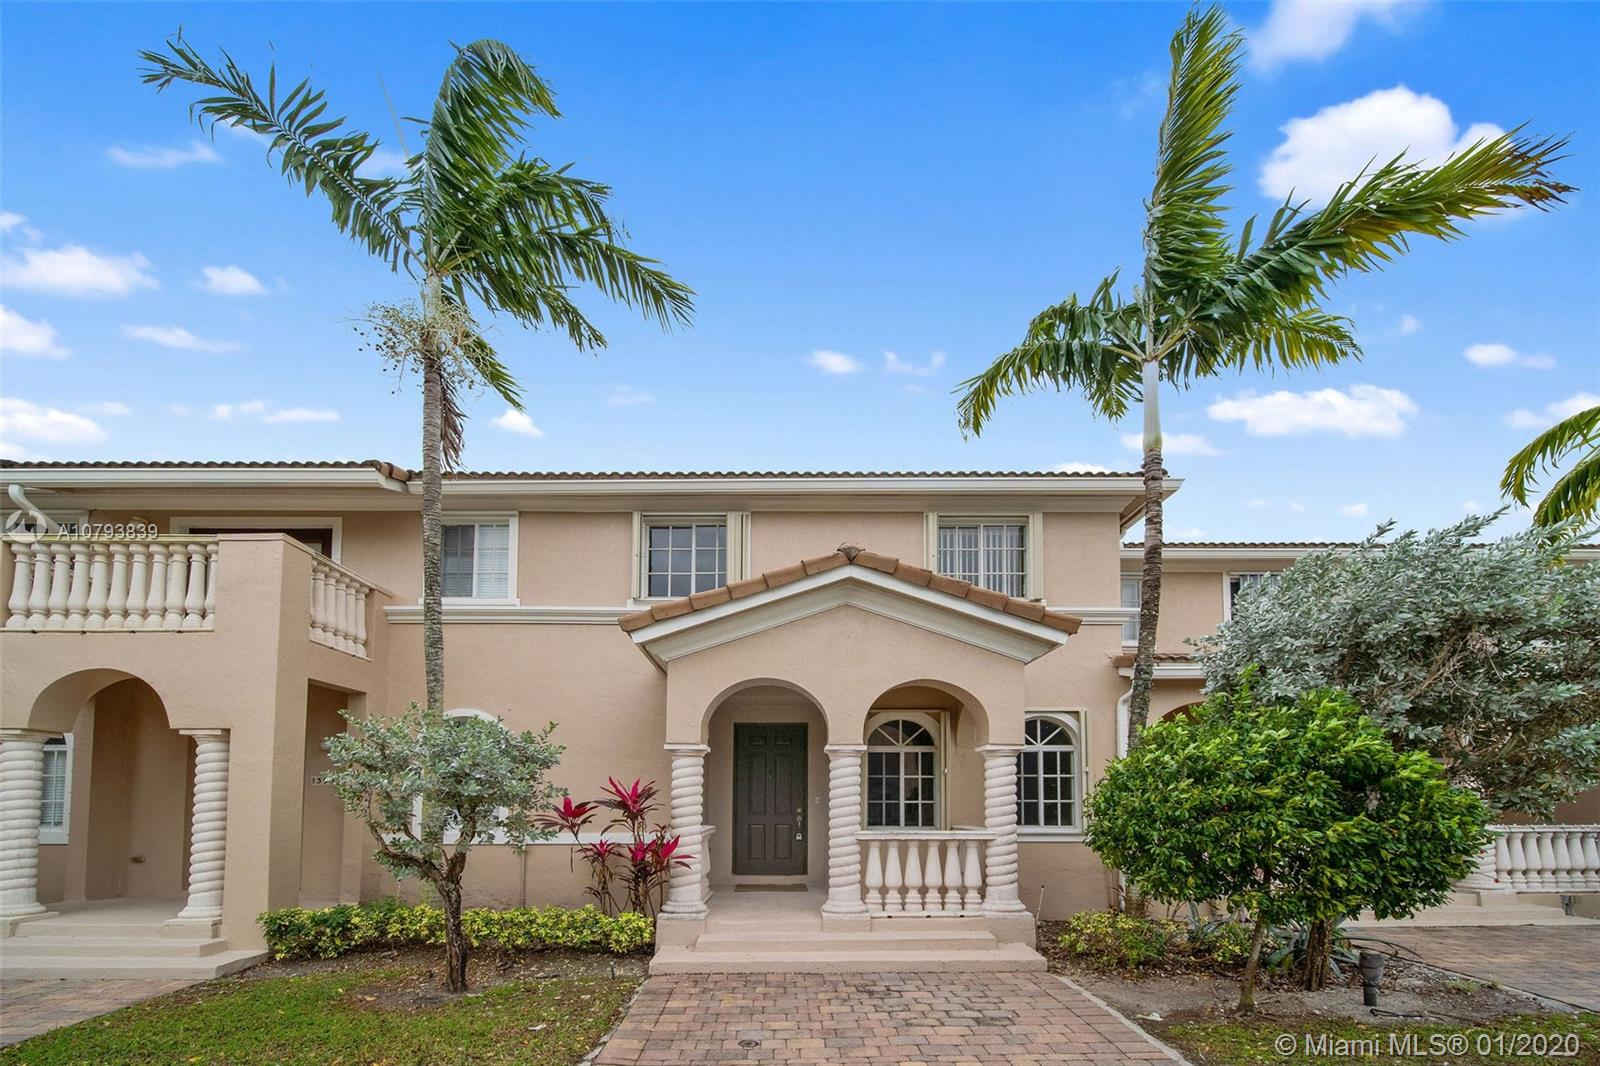 13934 SW 279th Ln, Homestead, FL 33032 - Homestead, FL real estate listing